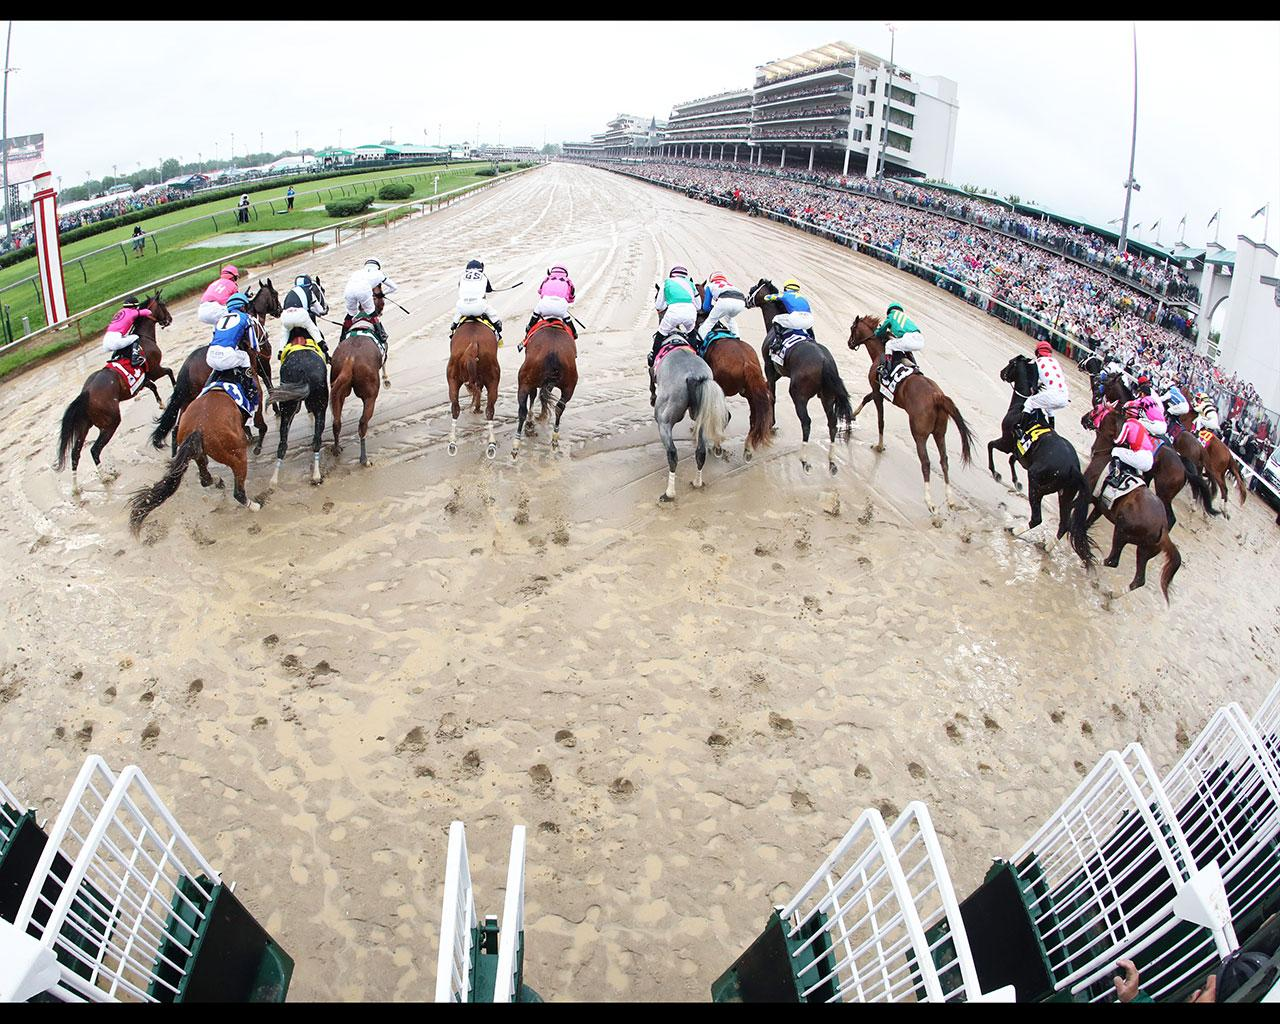 COUNTRY-HOUSE---The-Kentucky-Derby---145th-Running---05-04-19---R12---CD---Gate-Start-01